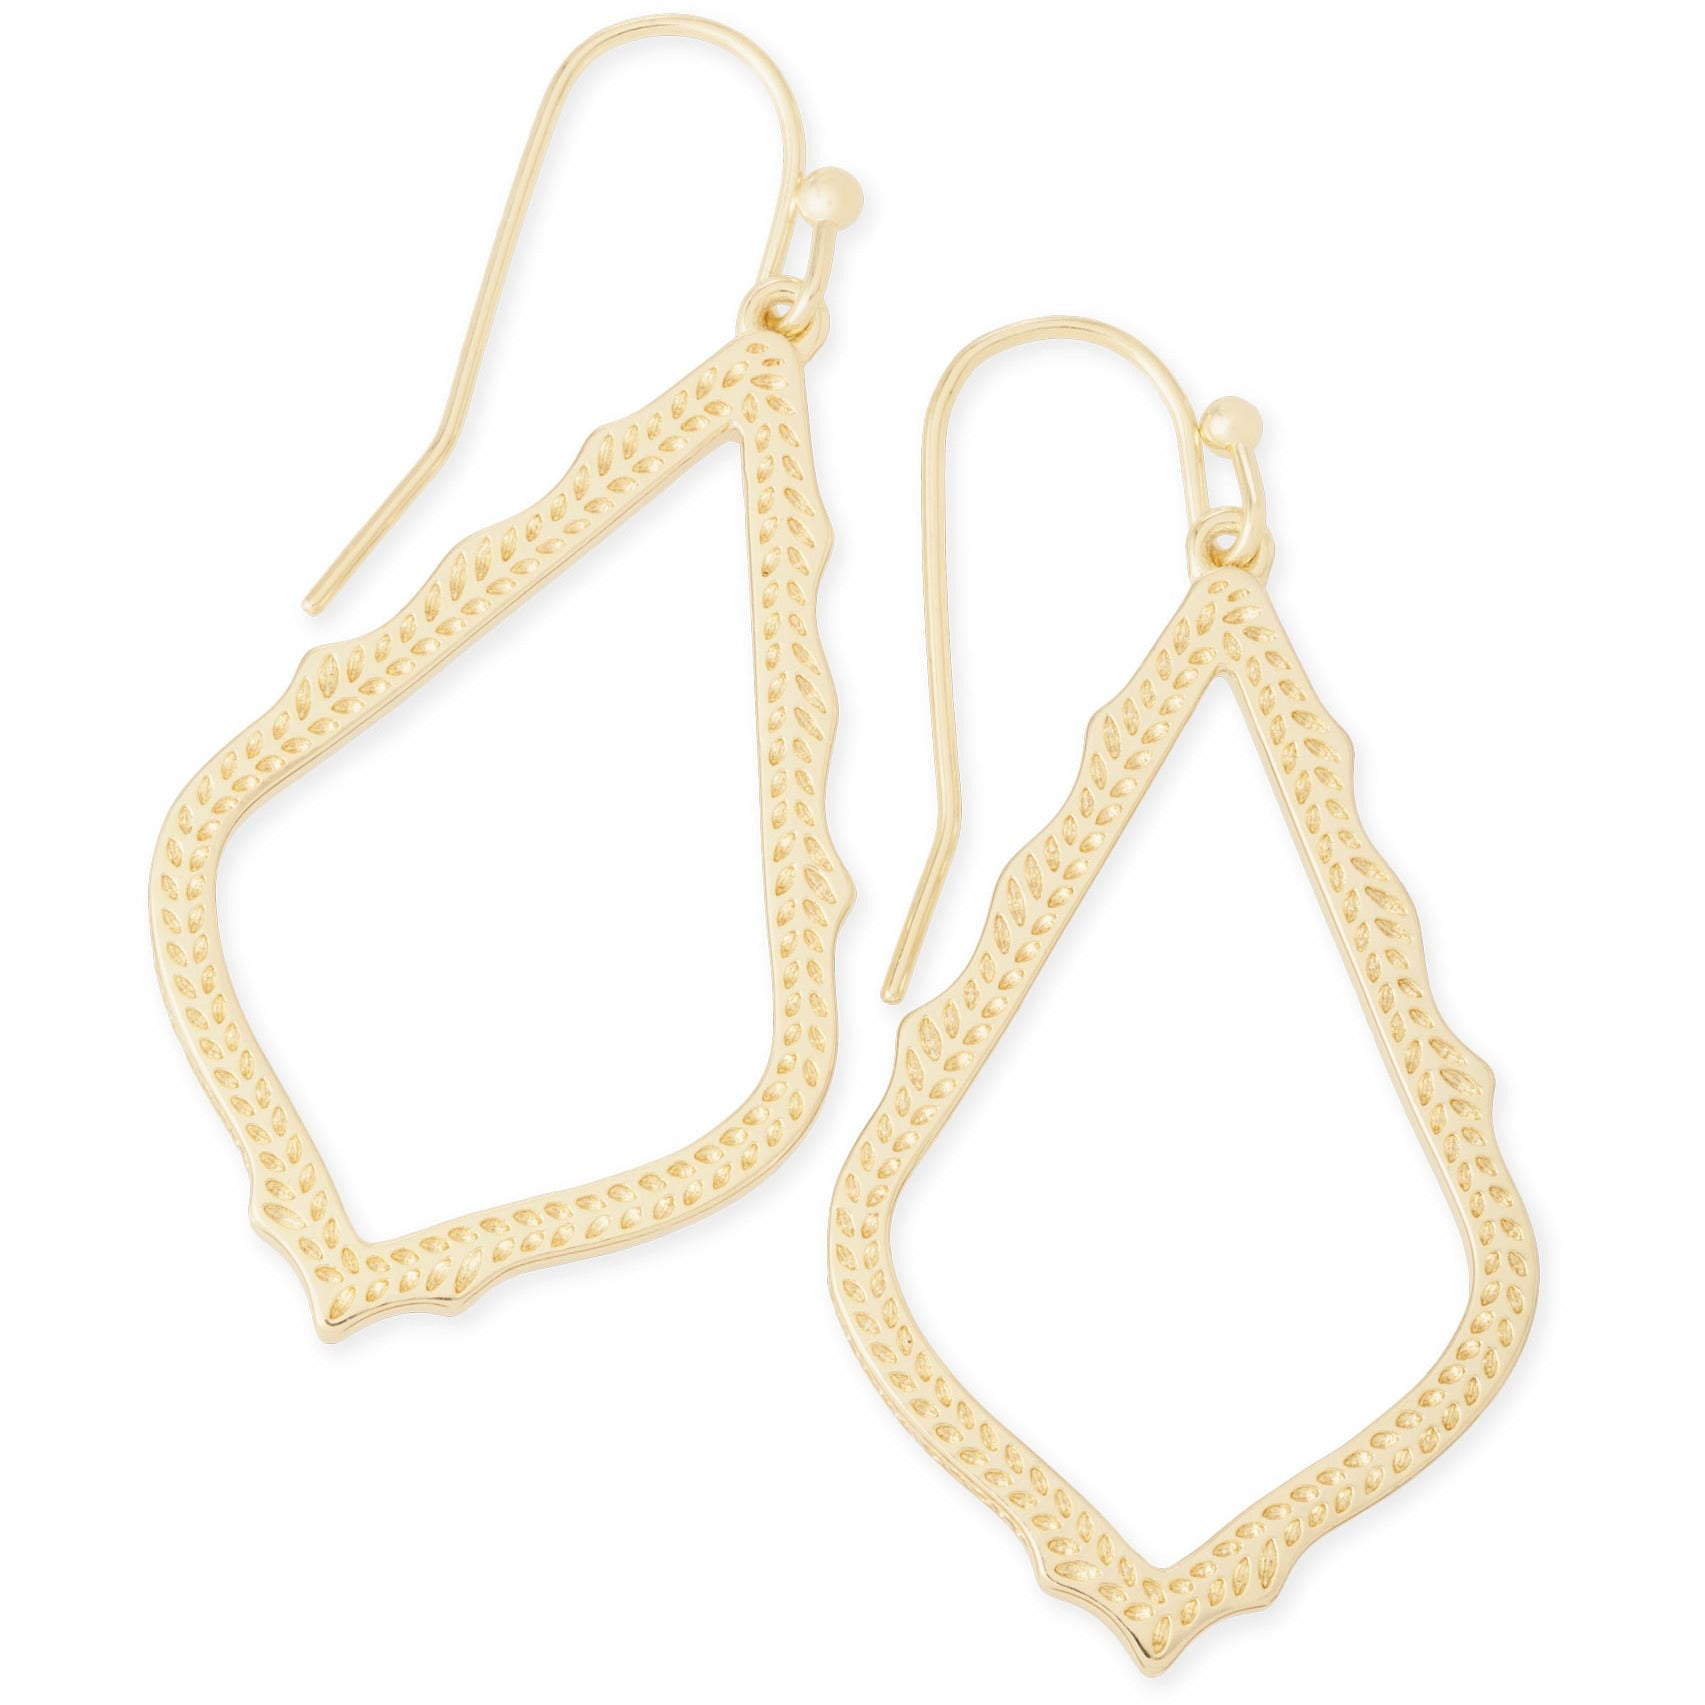 Kendra Scott - Sophia Drop Earrings in Gold, Front View